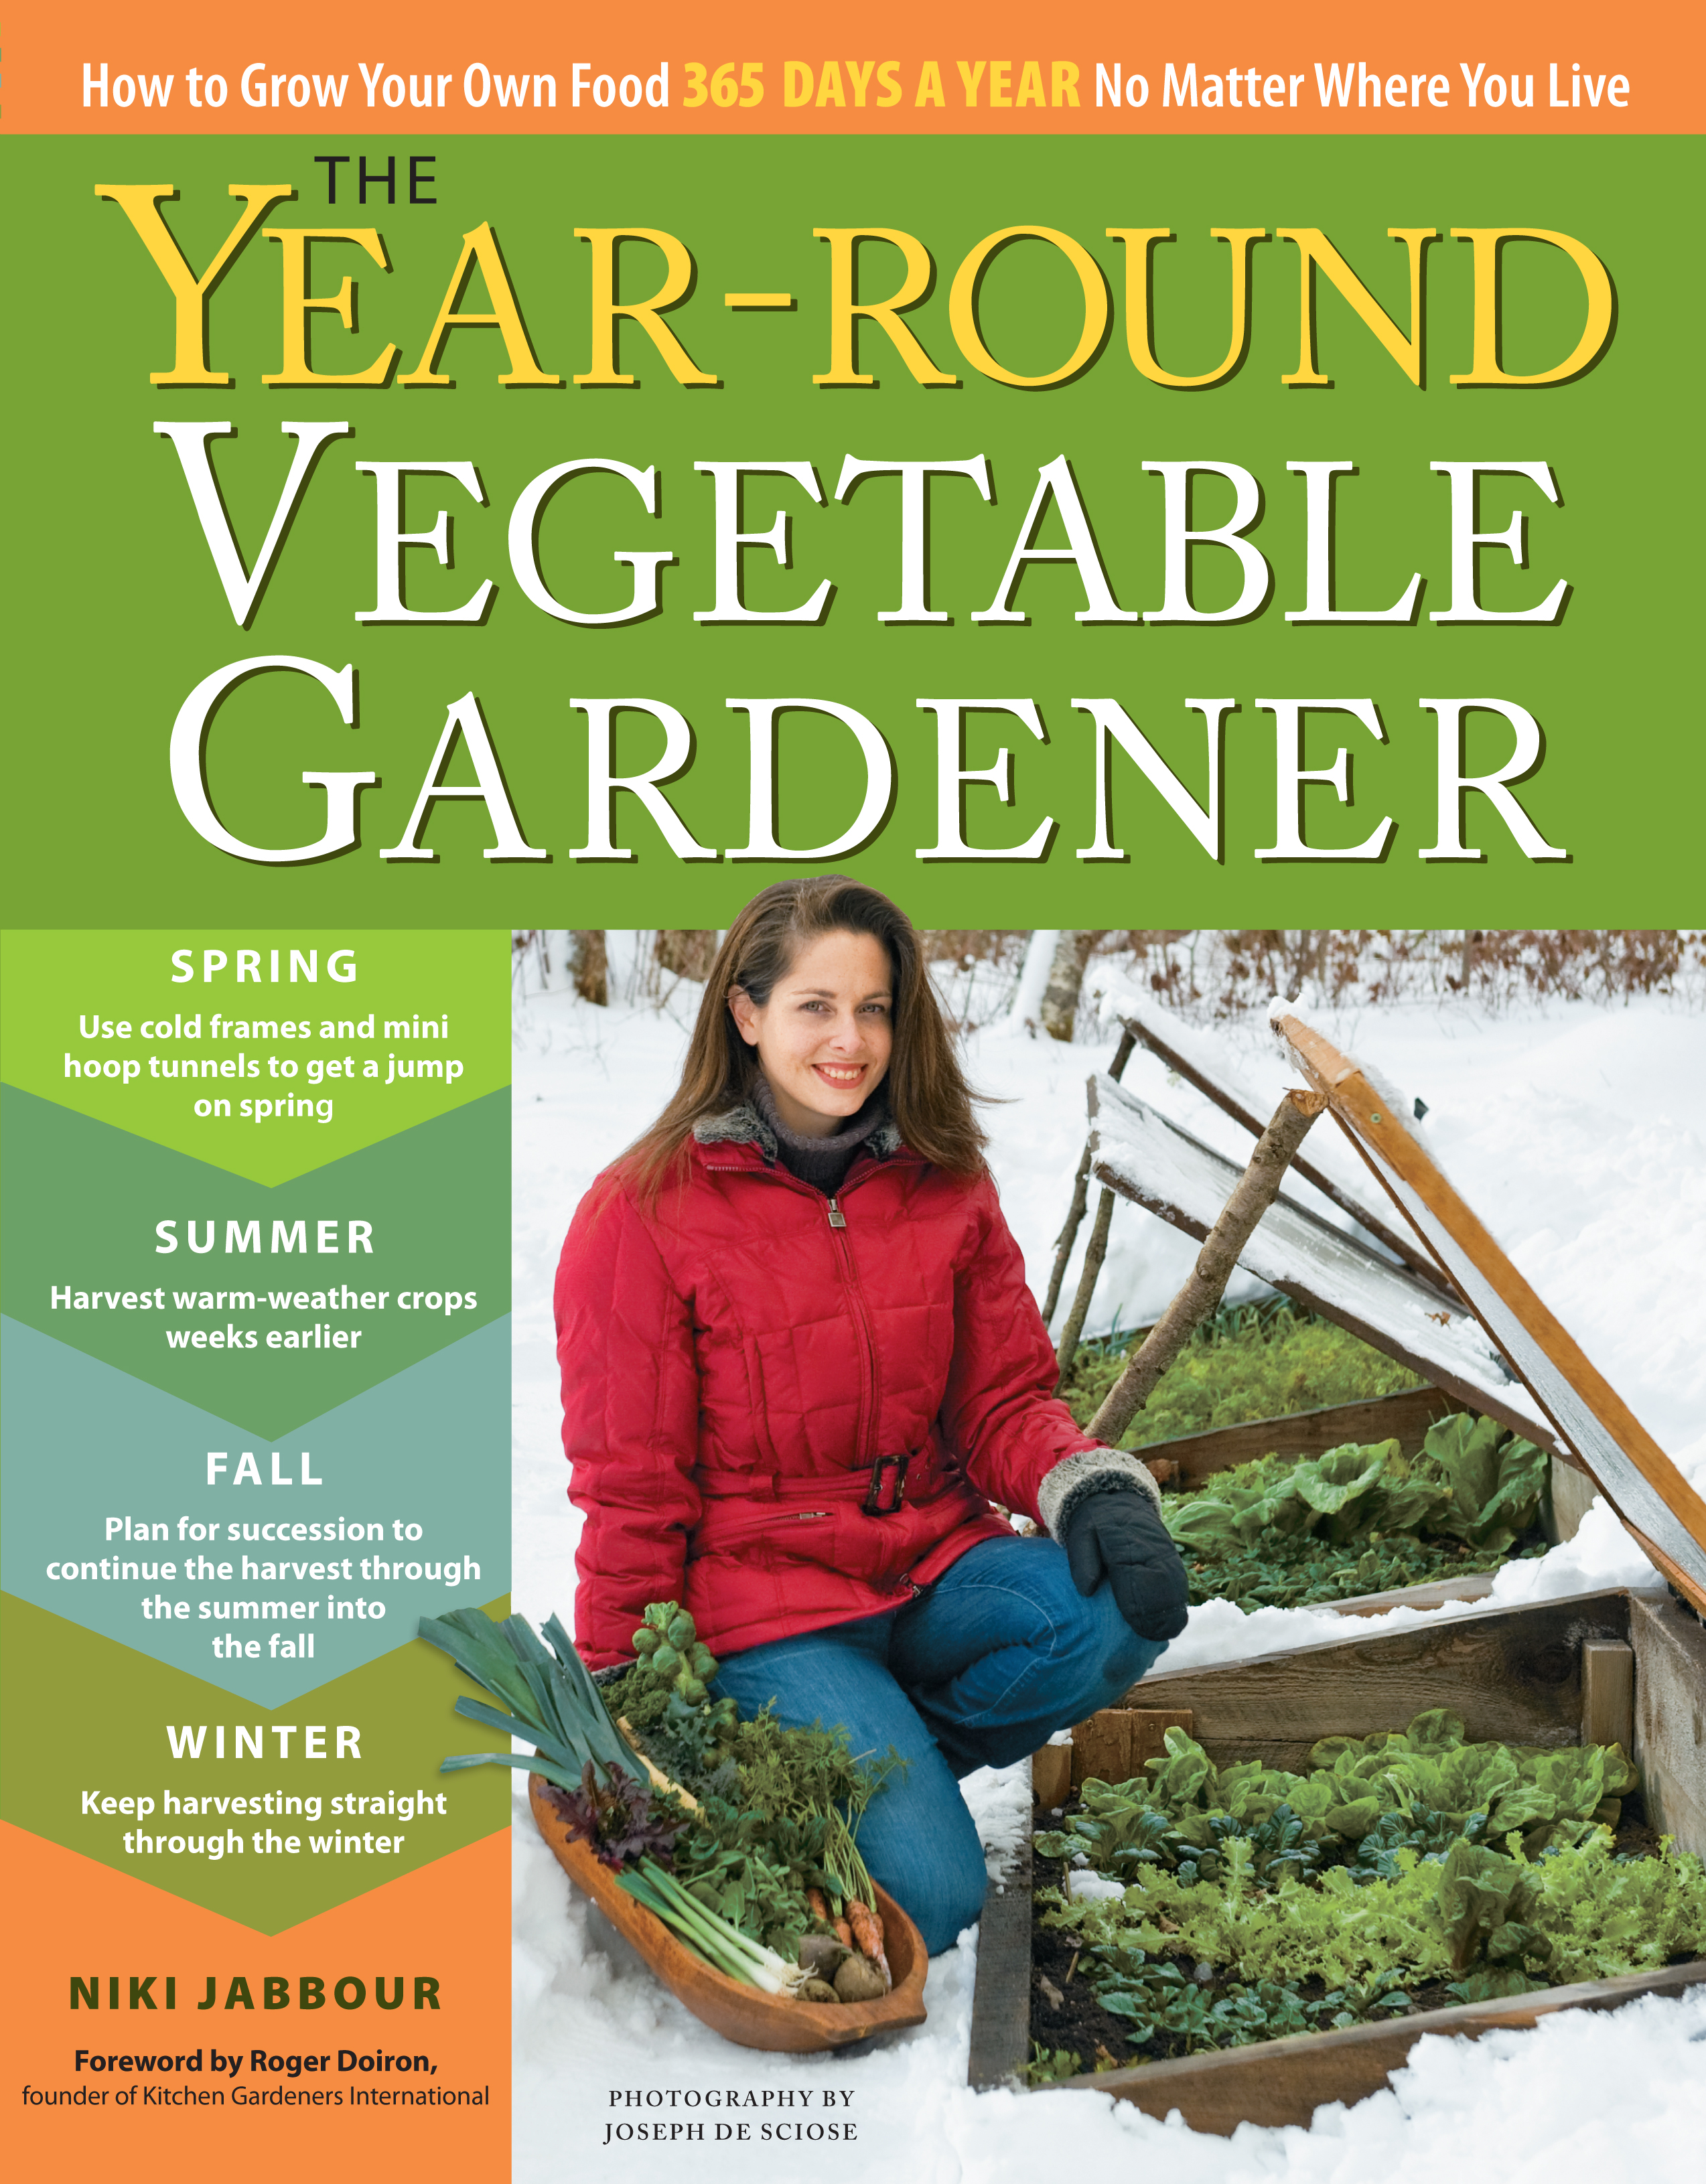 The Year-Round Vegetable Gardener How to Grow Your Own Food 365 Days a Year, No Matter Where You Live - Niki Jabbour